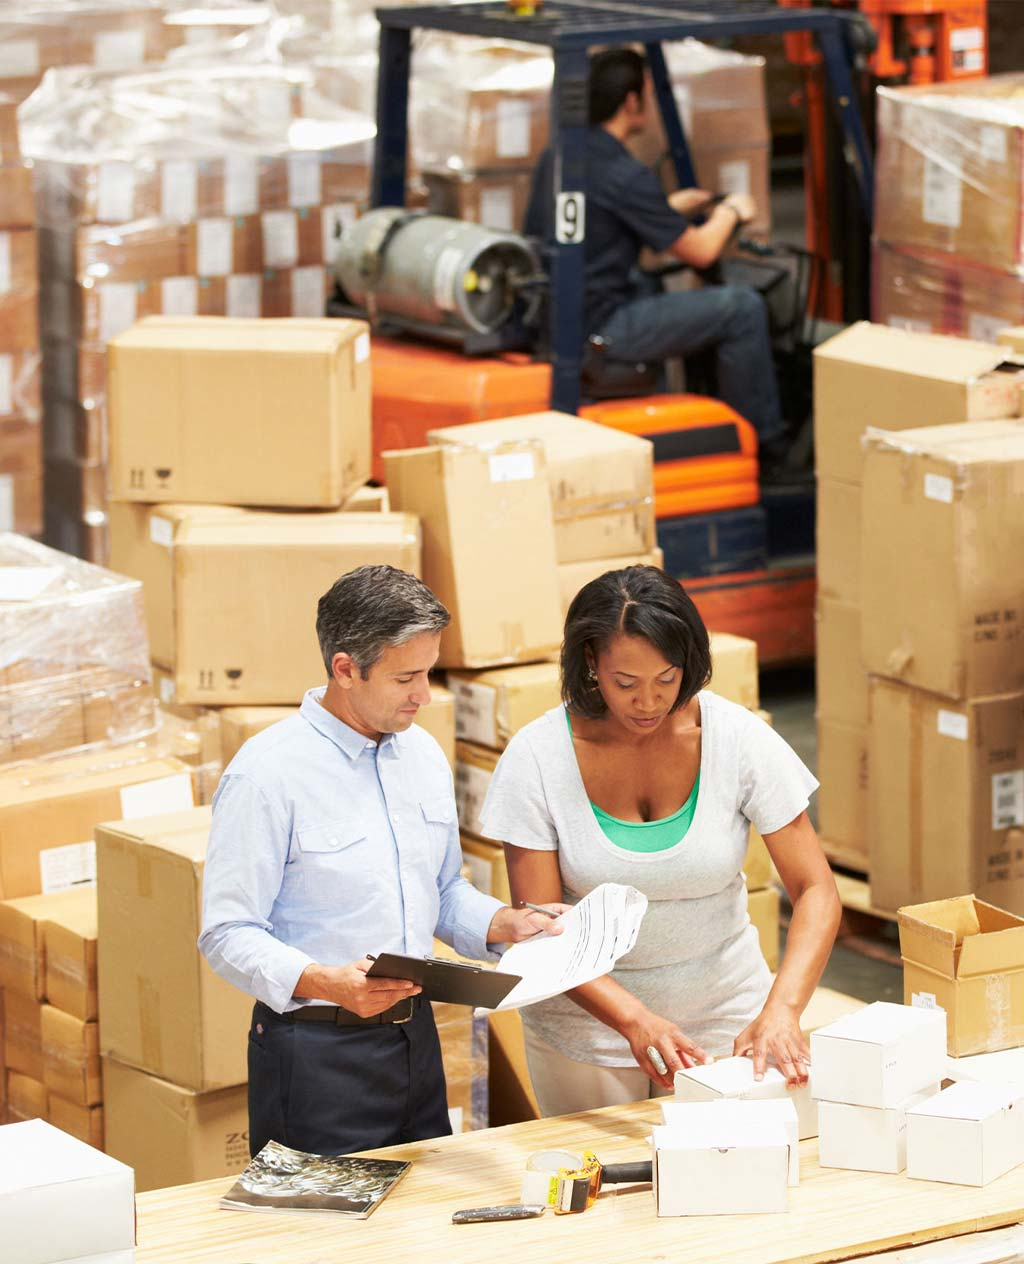 Inventory Management for Custom Design and Packaging Products | Creative Packaging Group, LLC